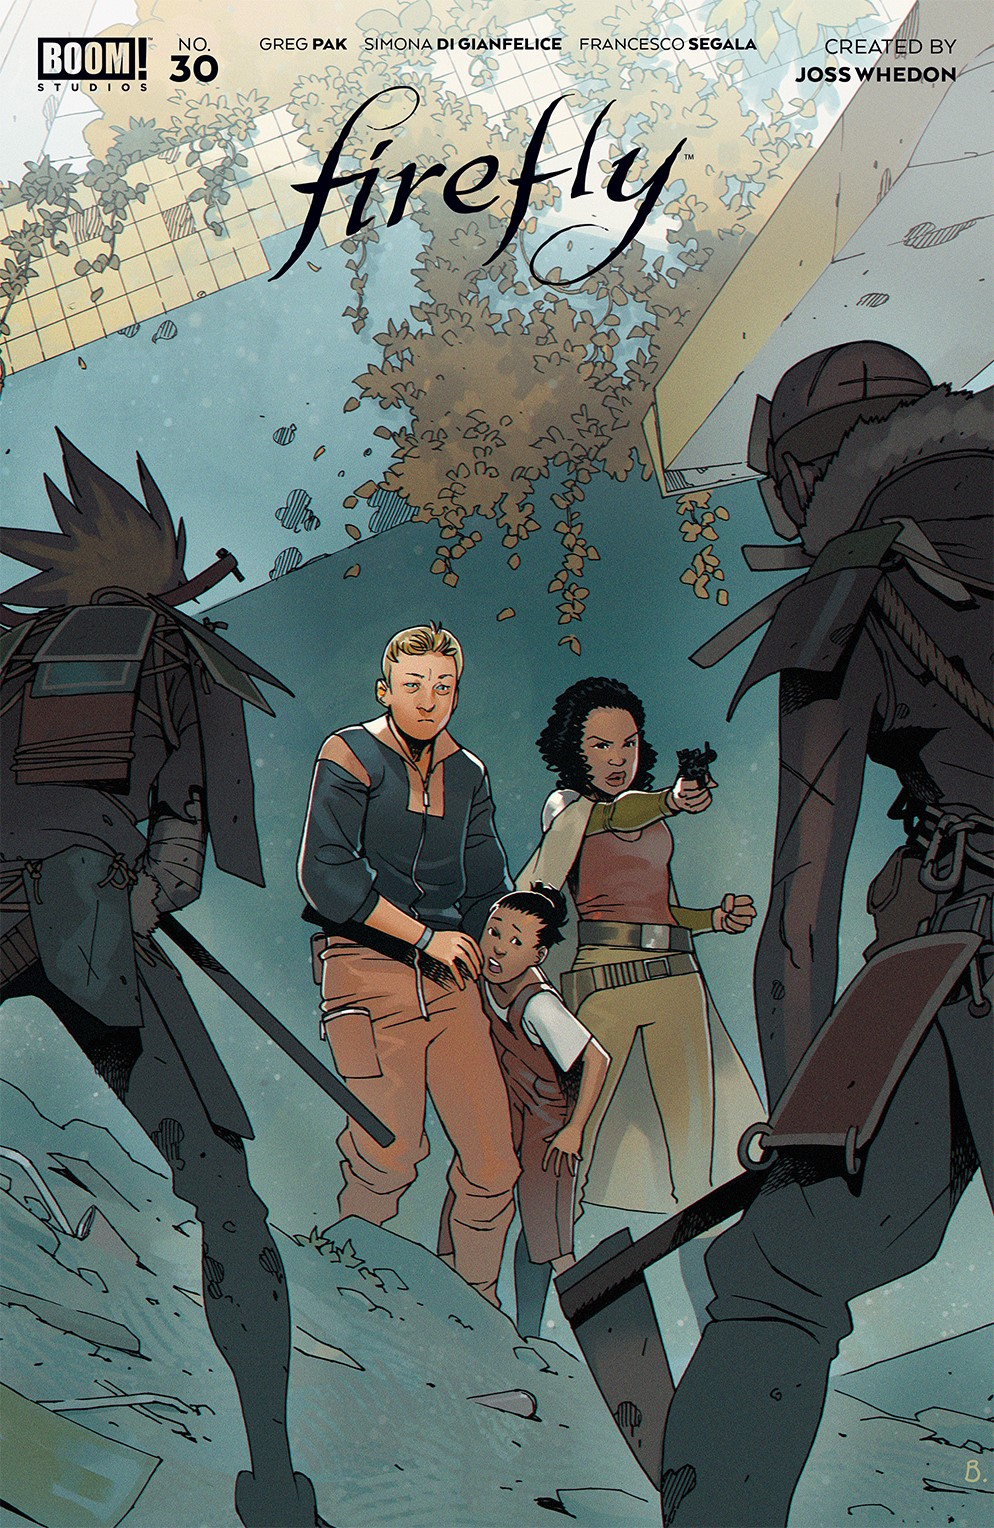 Firefly_030_Cover_A_Main ComicList: BOOM! Studios New Releases for 06/23/2021